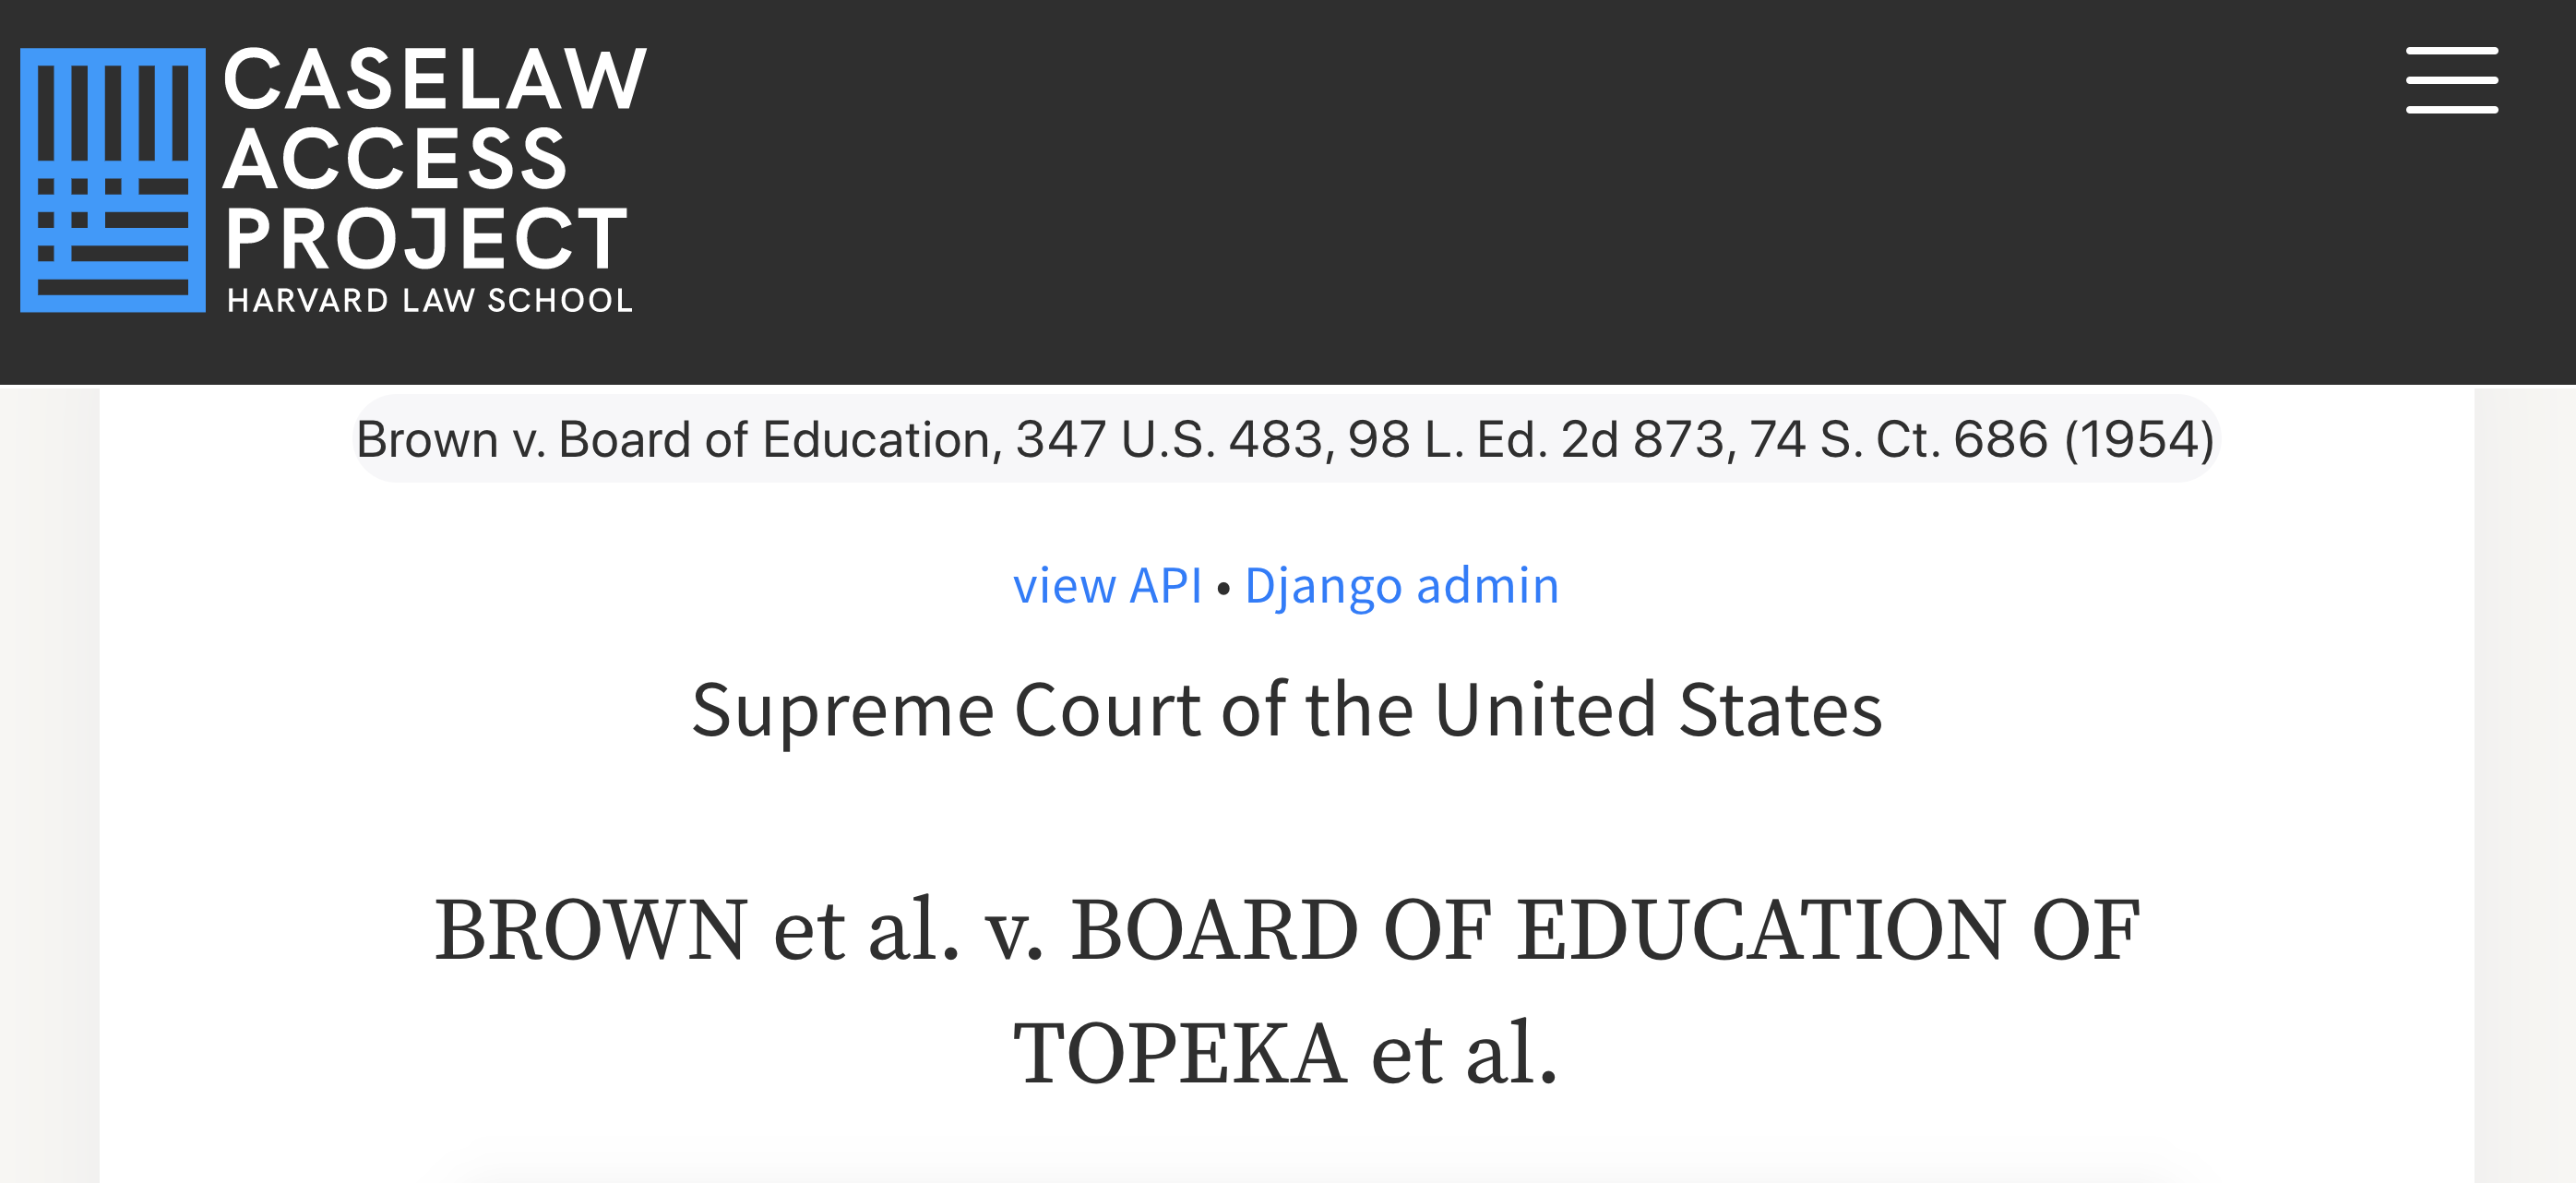 "Example of case citation field, showing: ""Brown v. Board of Education, 347 U.S. 483, 98 L. Ed. 2d 873, 74 S. Ct. 686 (1954)""."